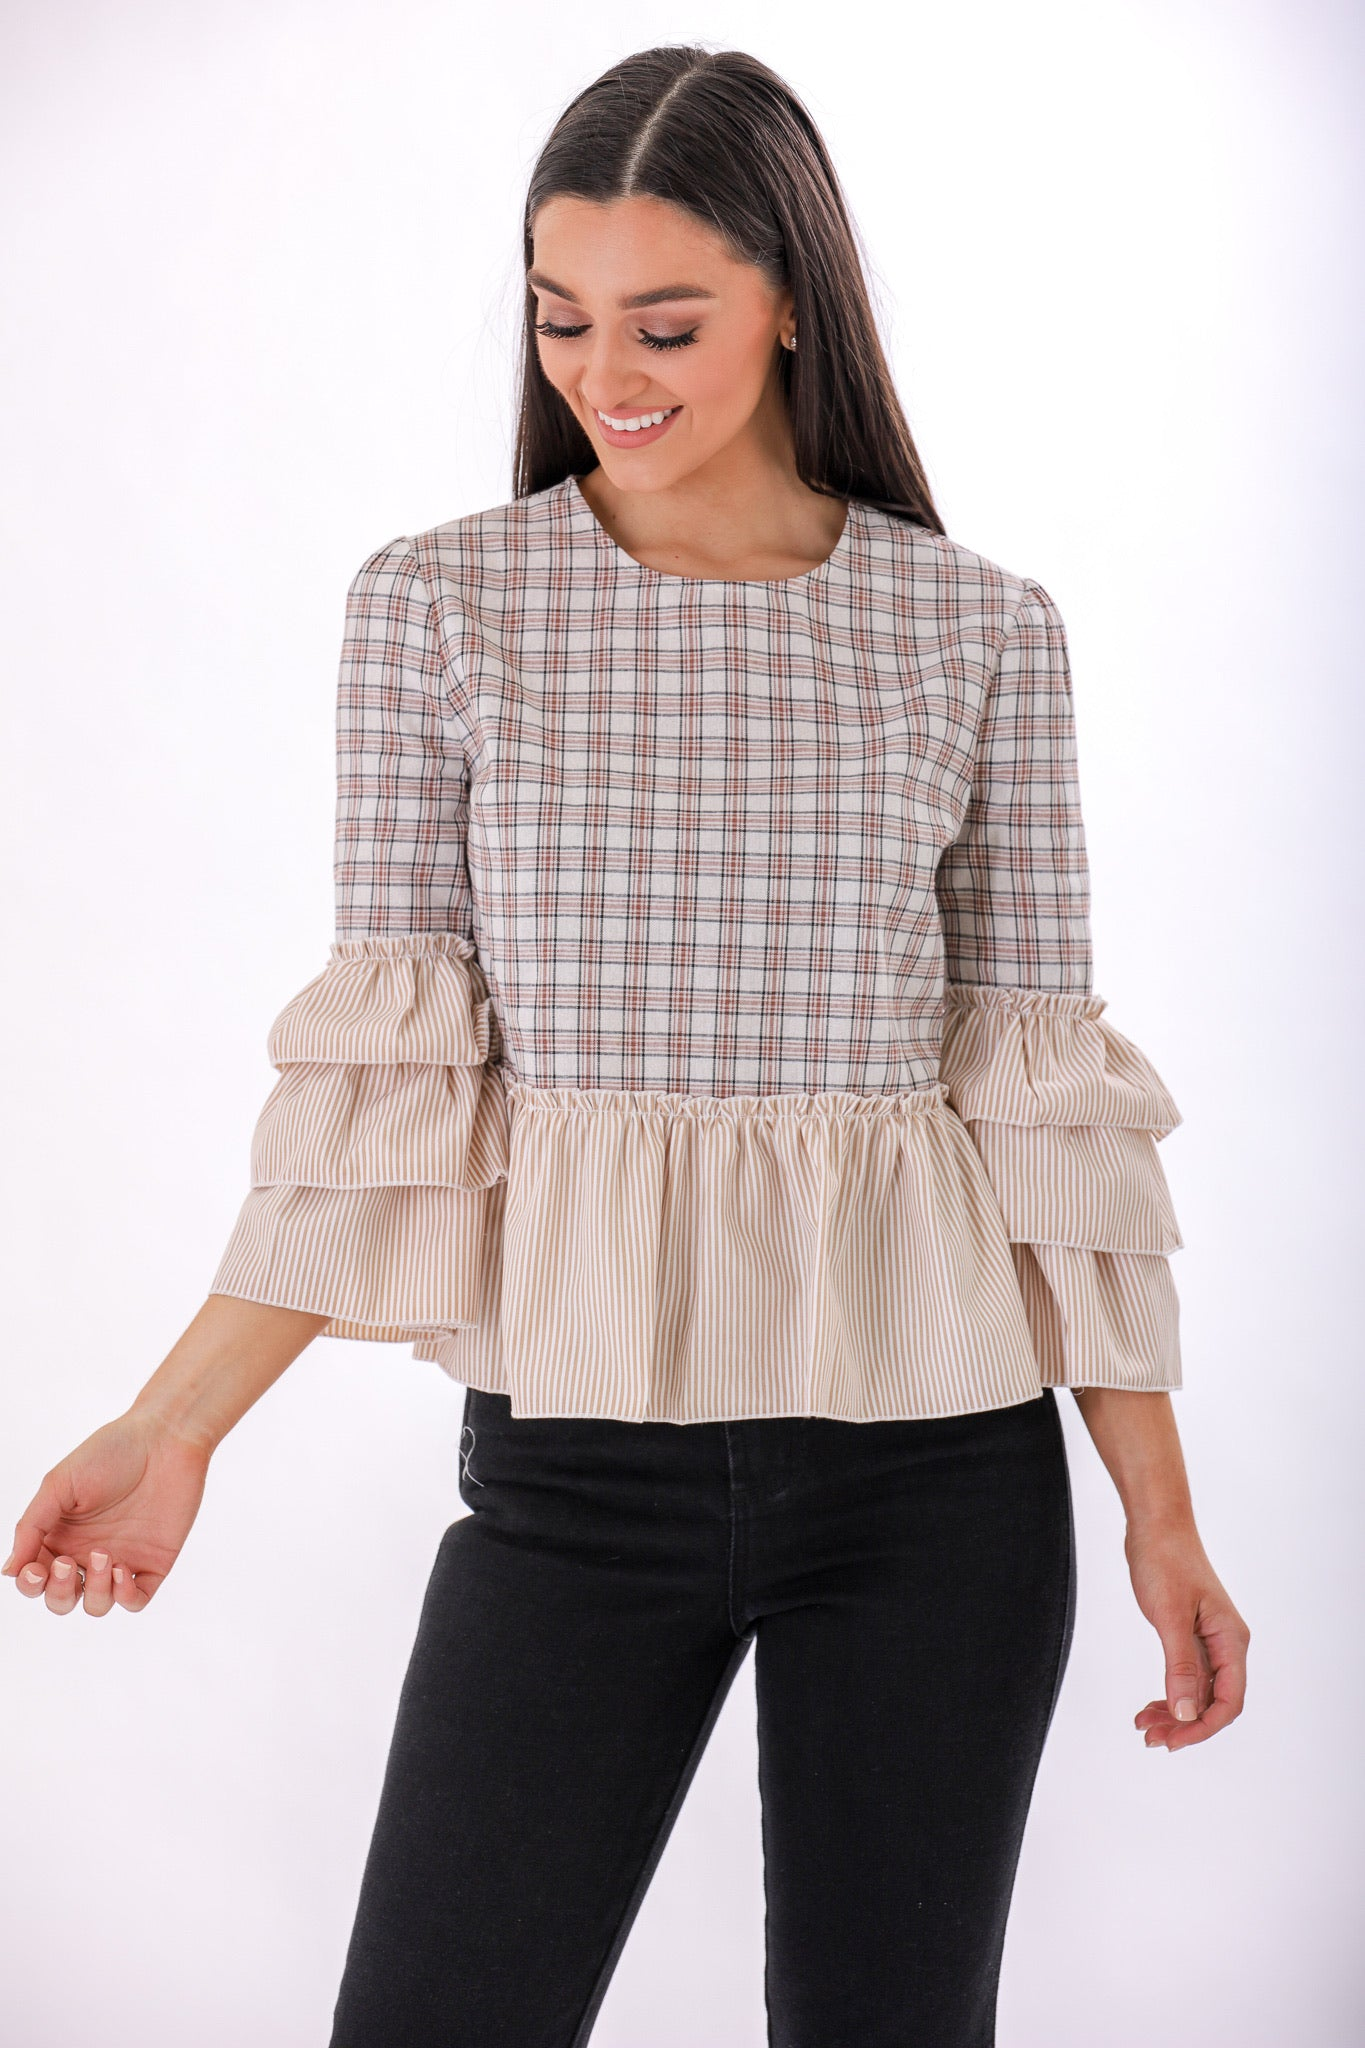 Flouncey Mood Tiered Ruffle Top - Tops - Wight Elephant Boutique